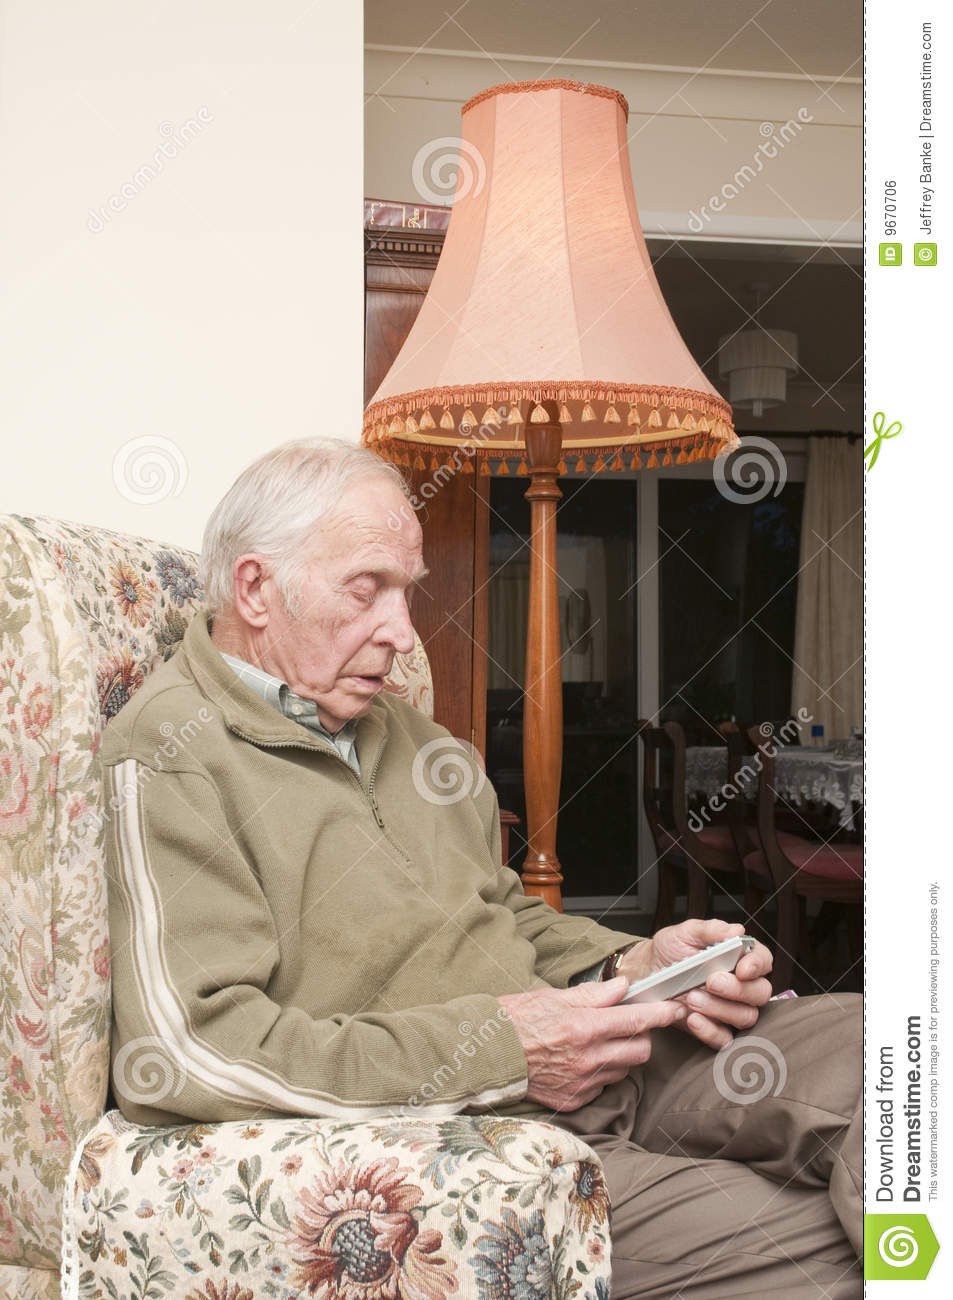 Elderly man sitting in armchair royalty free stock image for Sitting in armchair